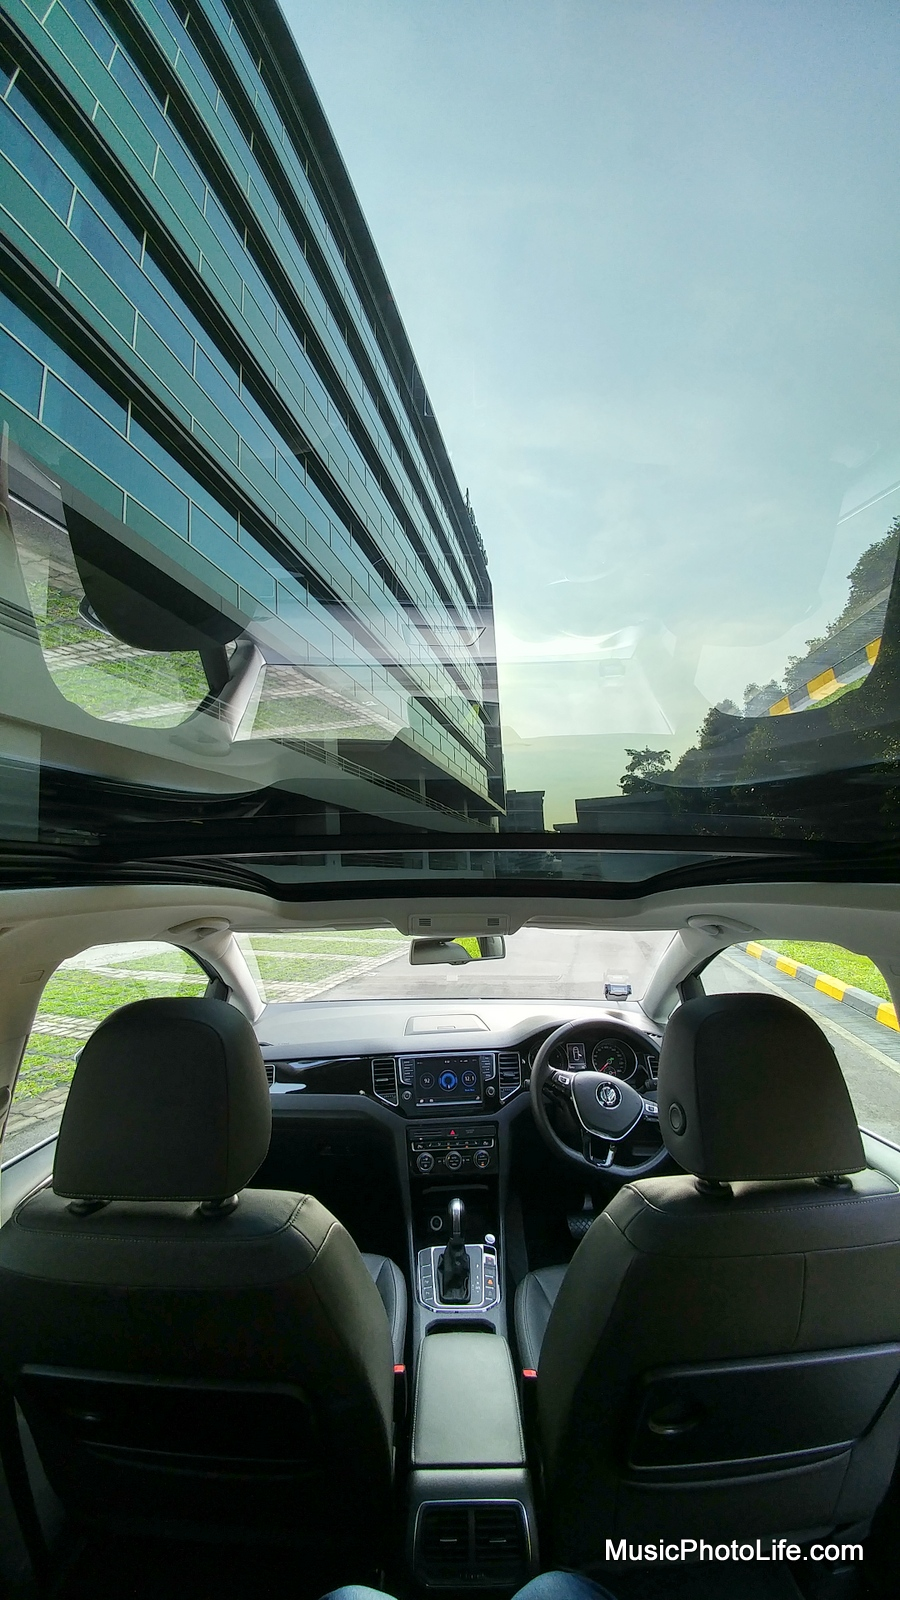 Volkswagen Saportsvan sunroof panoramic view